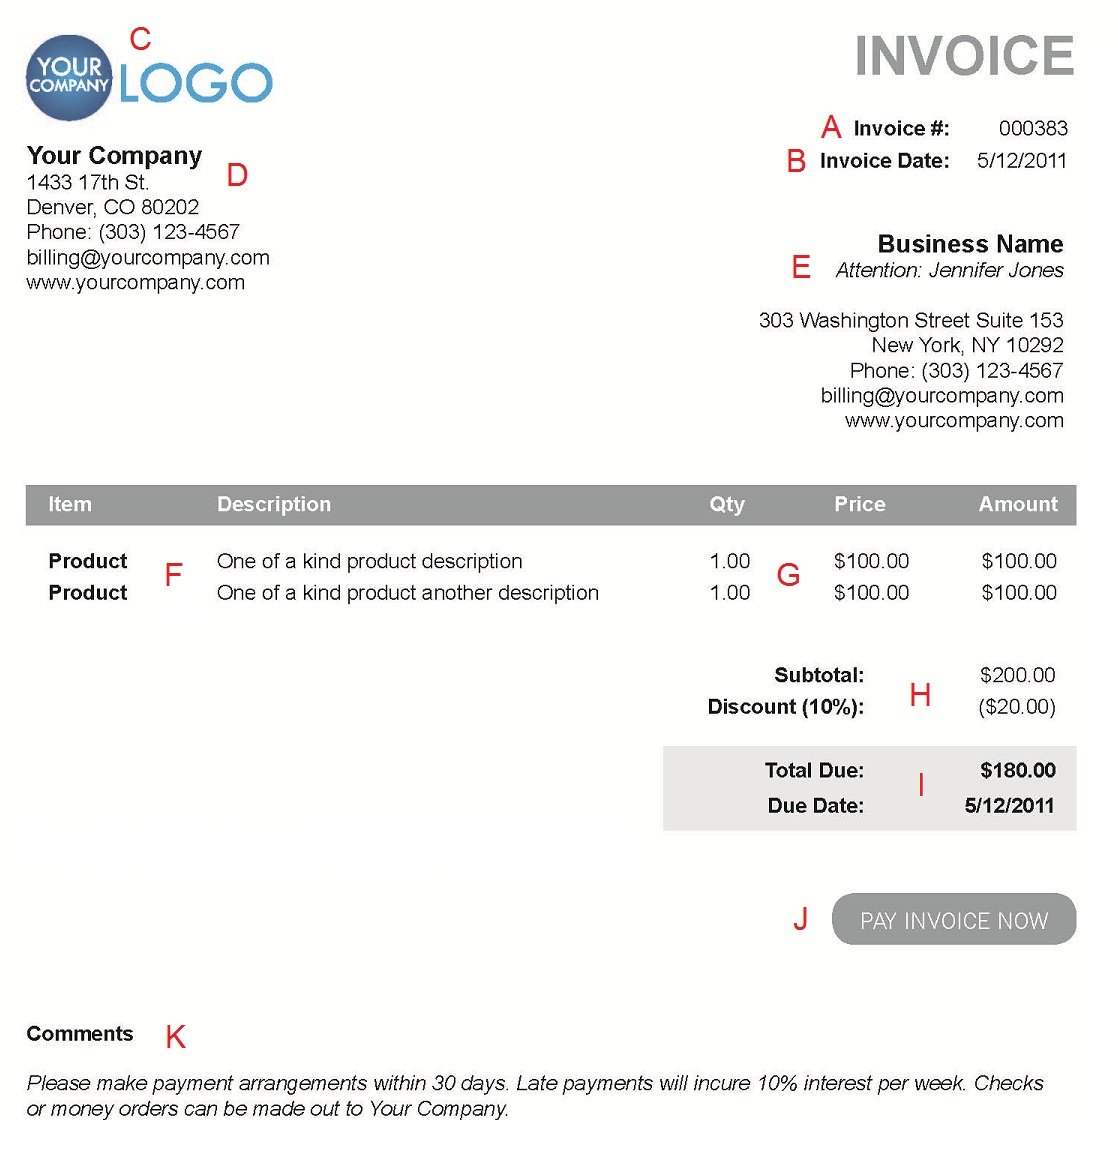 Opposenewapstandardsus  Scenic The  Different Sections Of An Electronic Payment Invoice With Fetching A  With Lovely Invoice Proforma Template Also How To Write Out An Invoice In Addition Invoiced Sales And Definition Of A Proforma Invoice As Well As Chargeback Invoice Additionally Dot Net Invoice From Paysimplecom With Opposenewapstandardsus  Fetching The  Different Sections Of An Electronic Payment Invoice With Lovely A  And Scenic Invoice Proforma Template Also How To Write Out An Invoice In Addition Invoiced Sales From Paysimplecom